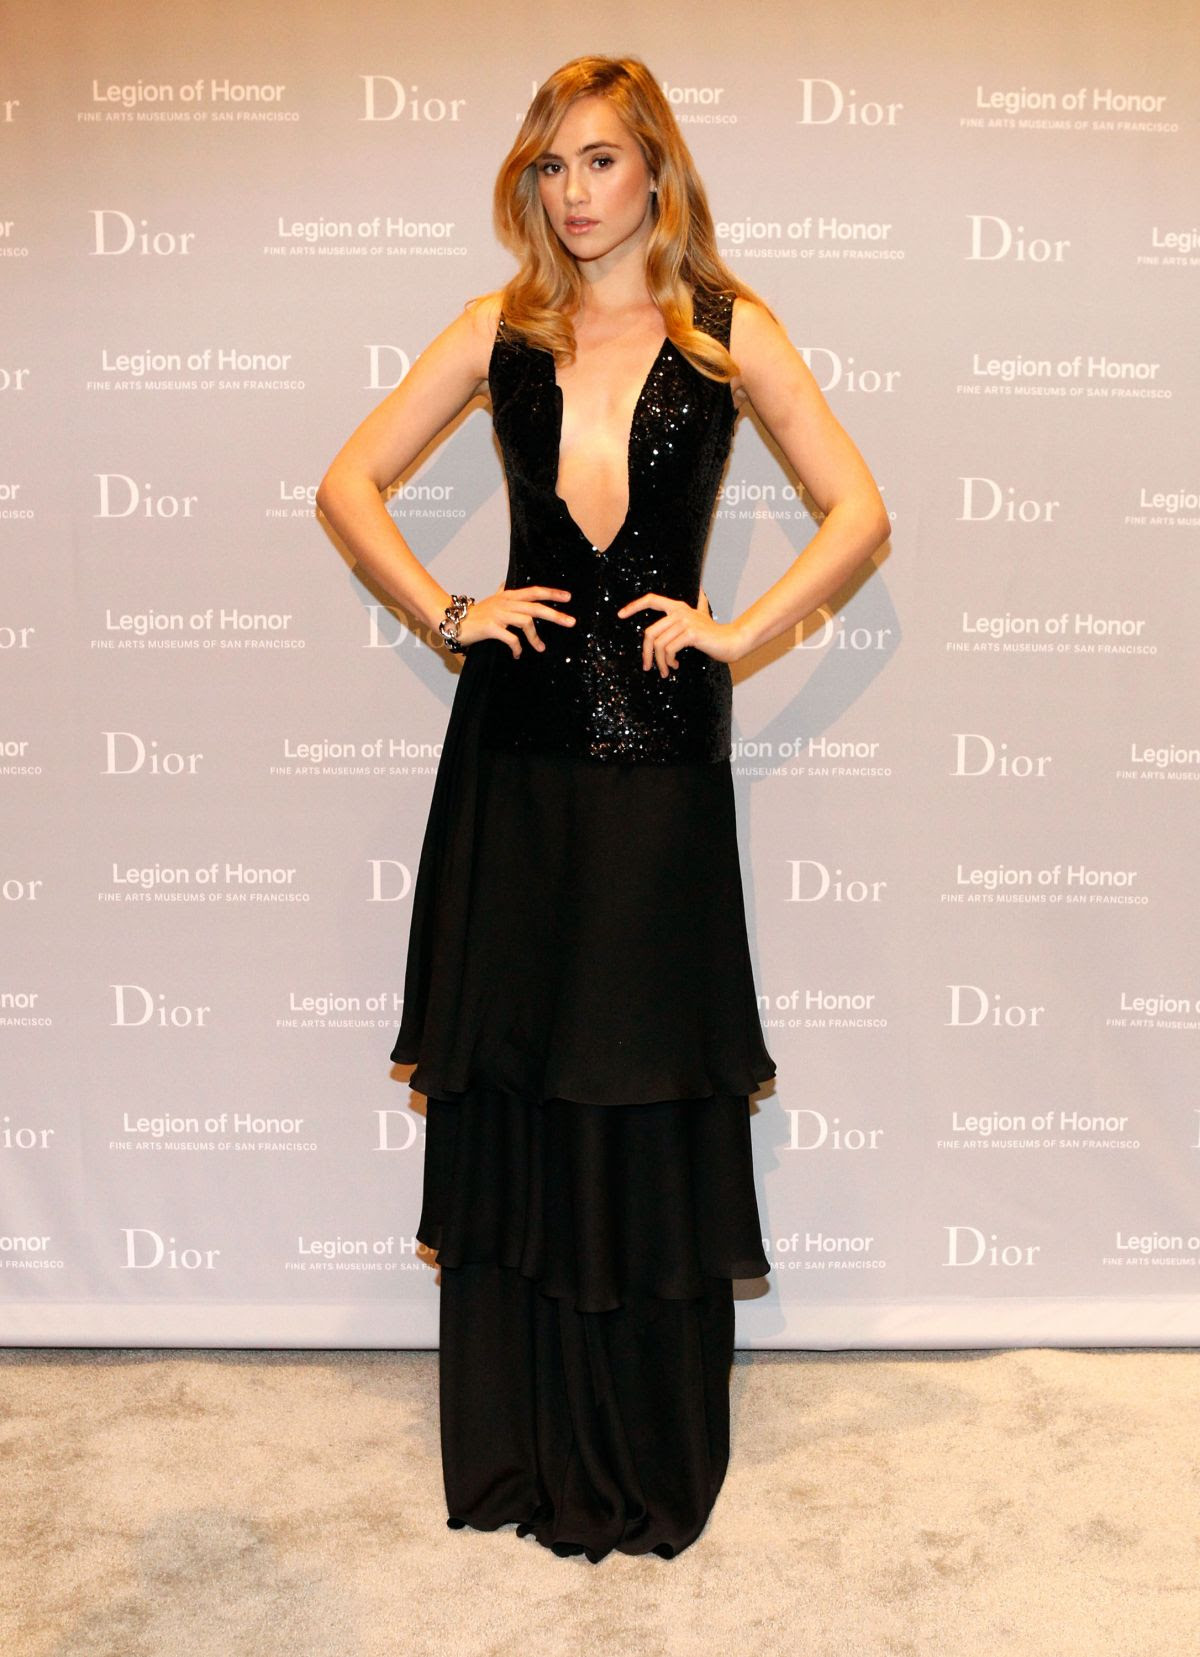 SUKI WATERHOUSE at 2015 Mid-winter Gala Presented by Dior in San Francisco